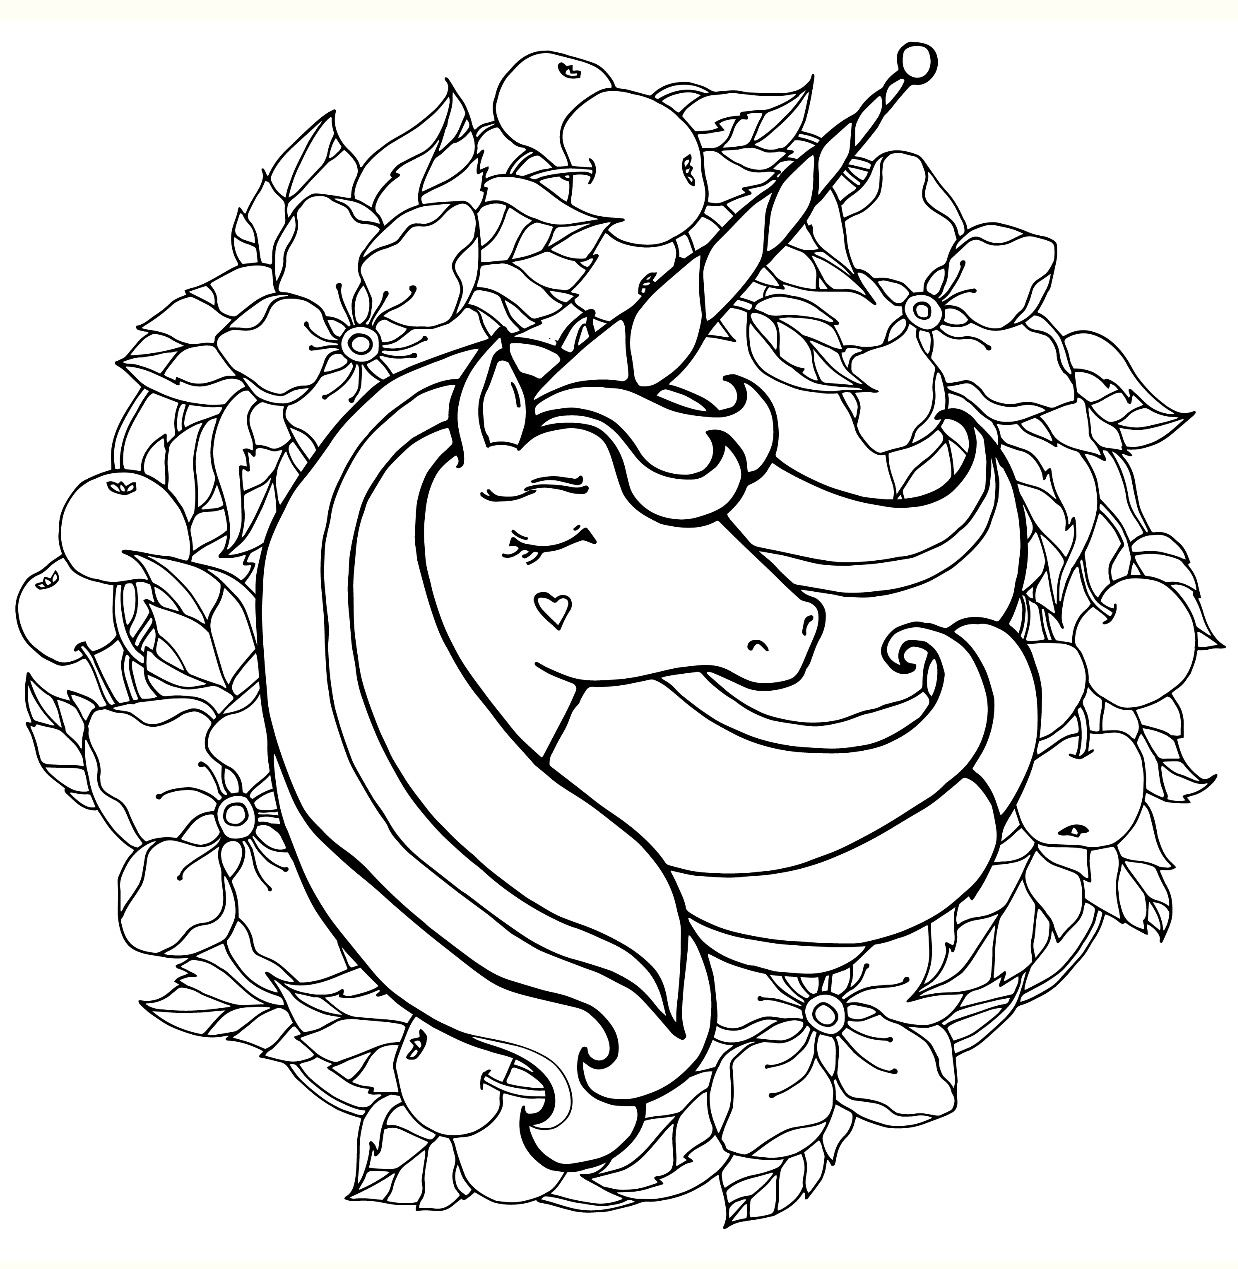 Pin by Mary Singletary on Unicorns 20 Coloring pages